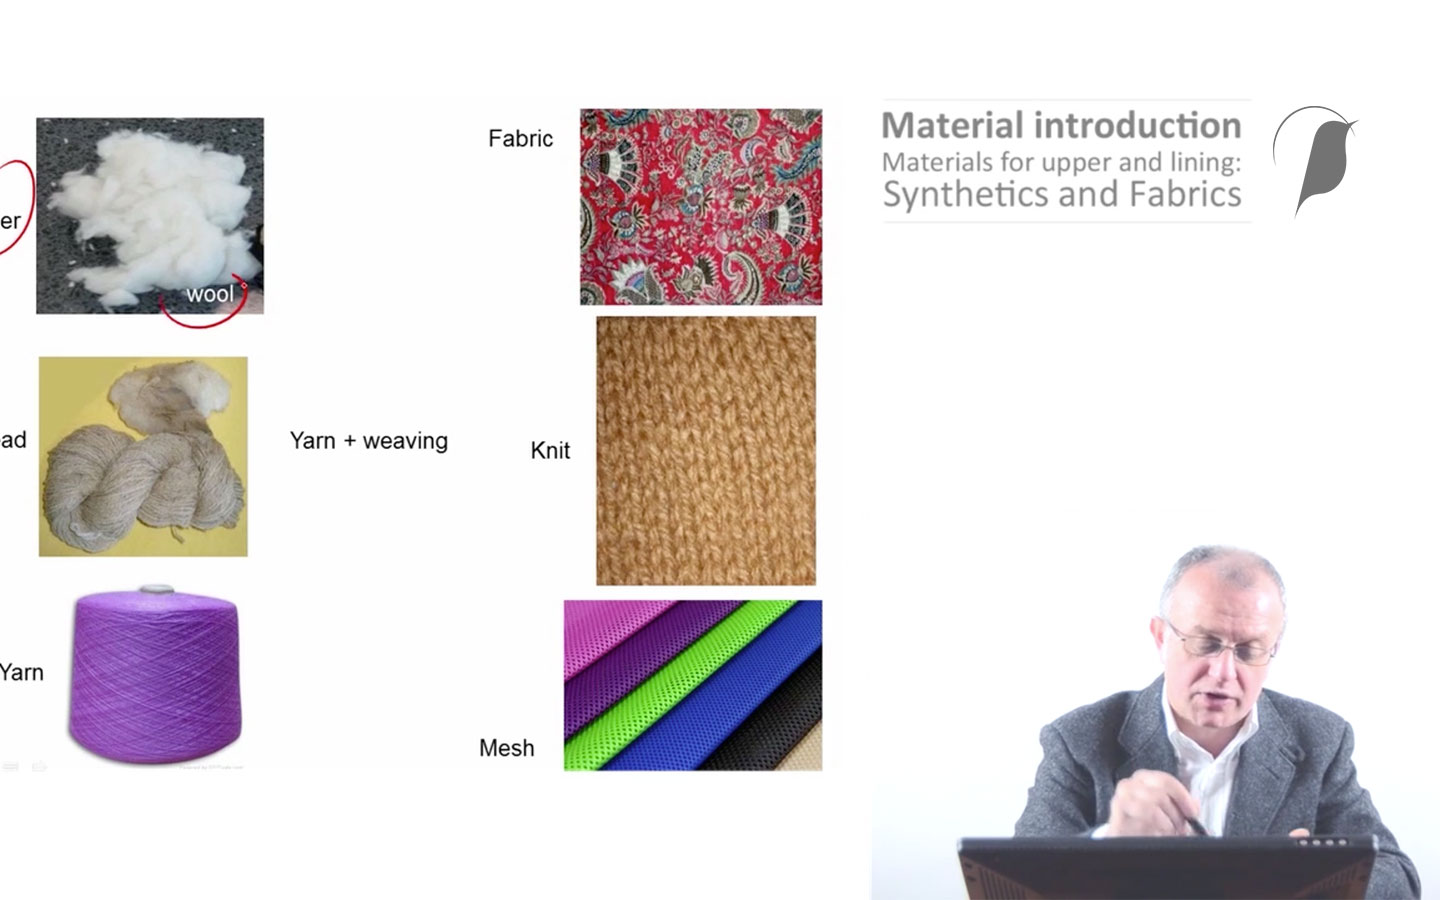 e-Learning: Materials and components